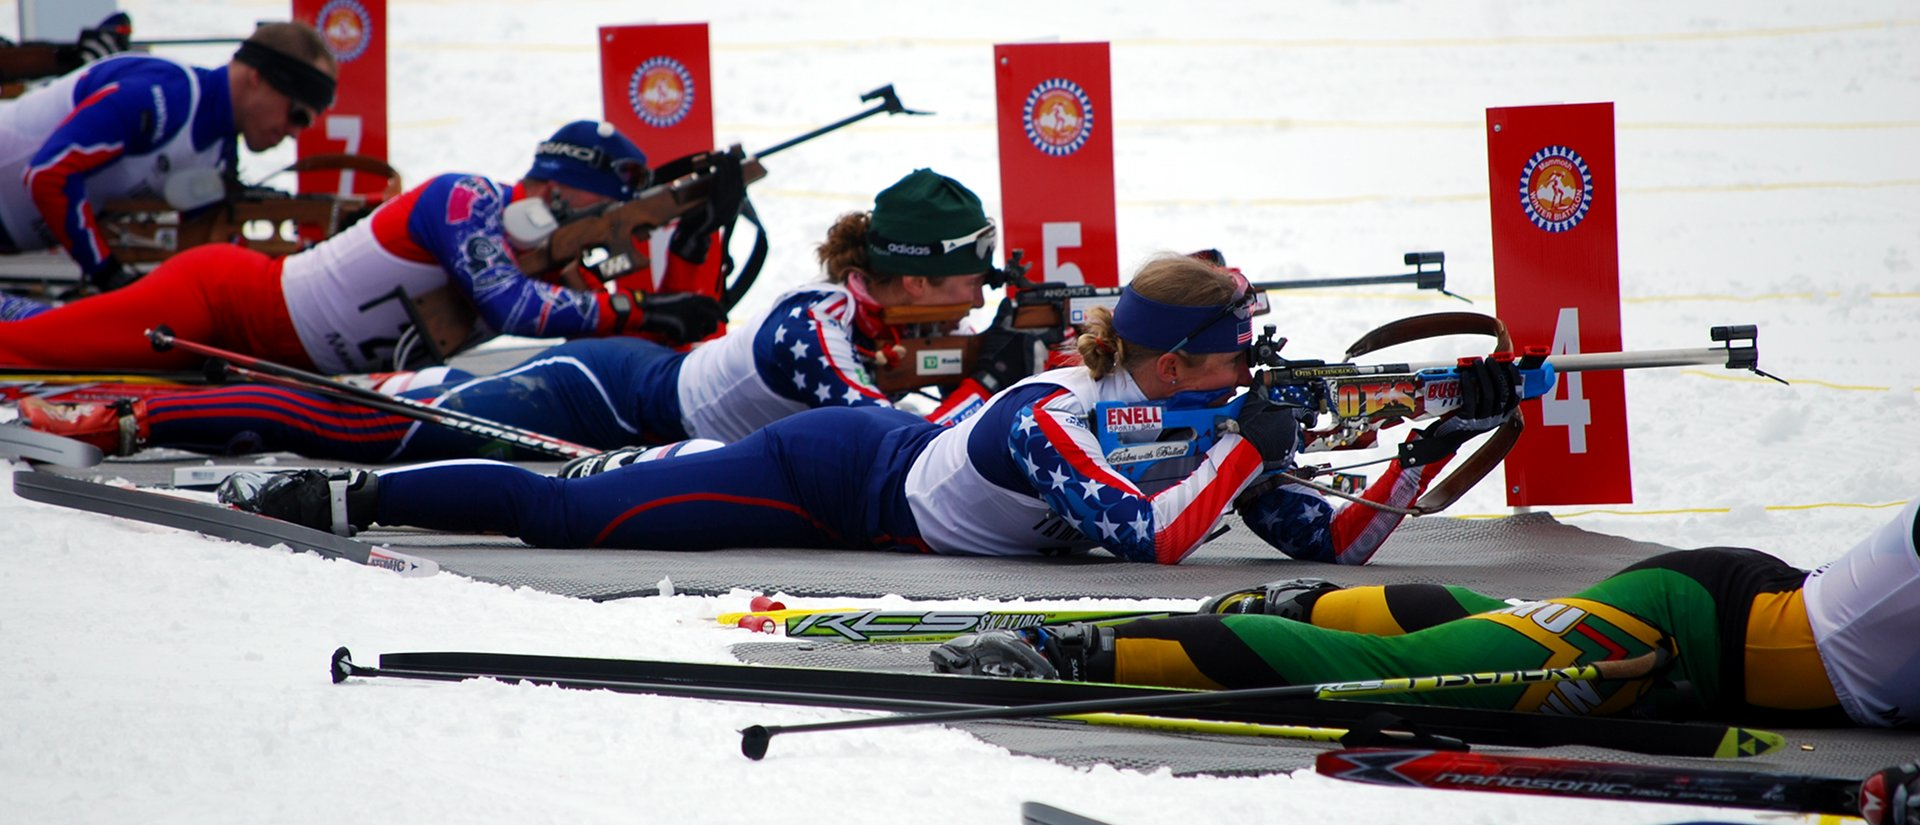 Biathlon: Russia's Glazyrina banned from doping-hit worlds